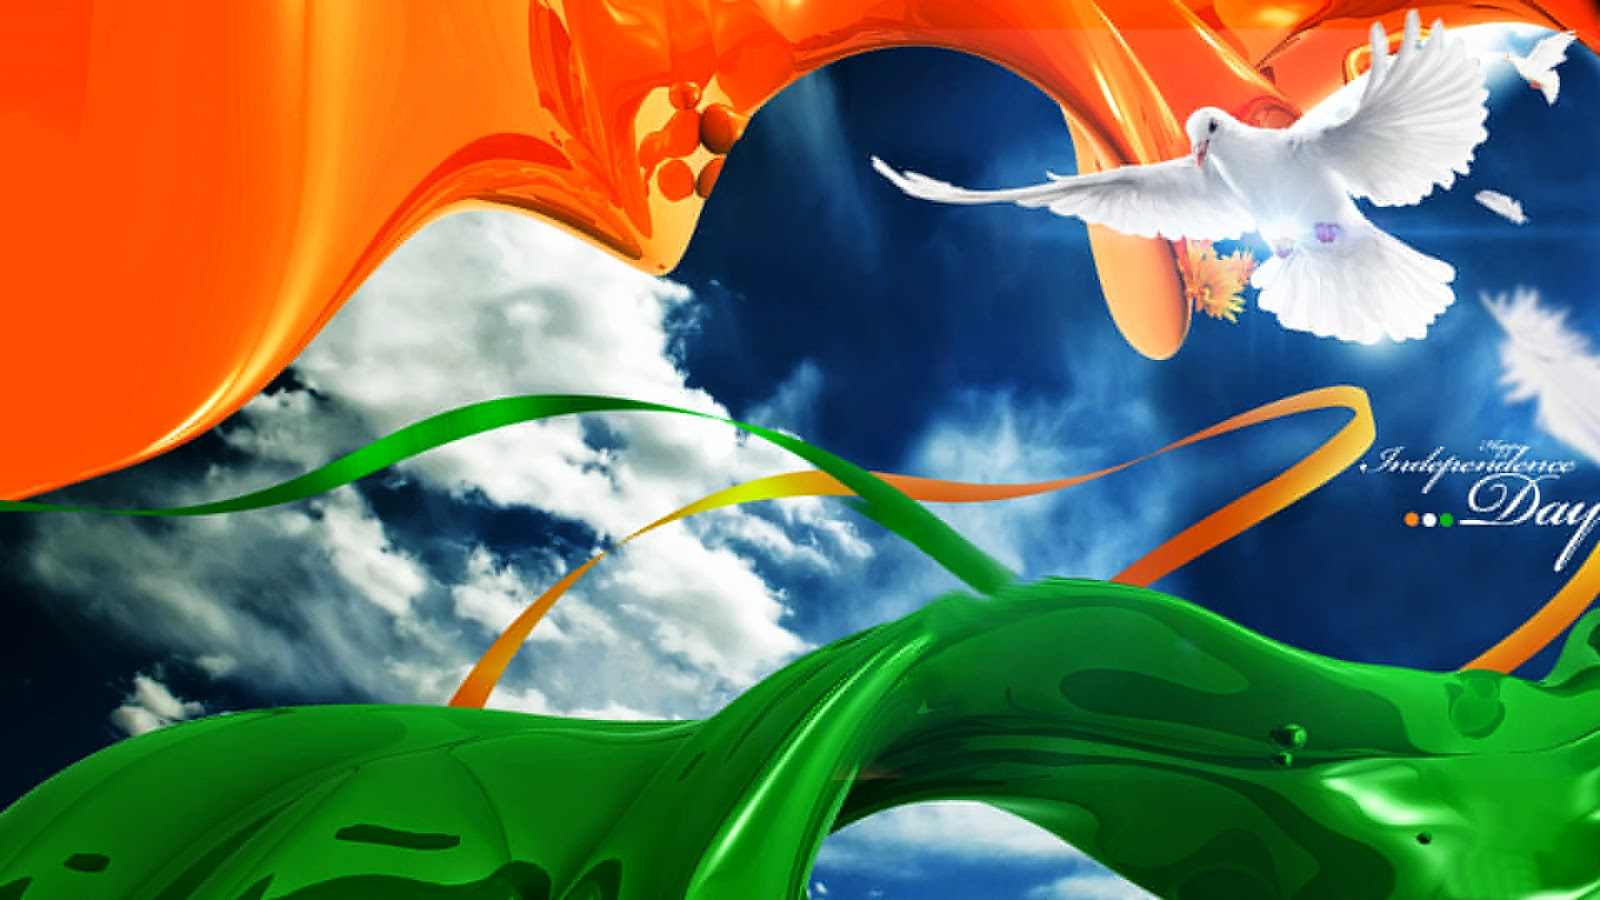 Republic day flag 26 january bird fly in the sky desktop wallpaper